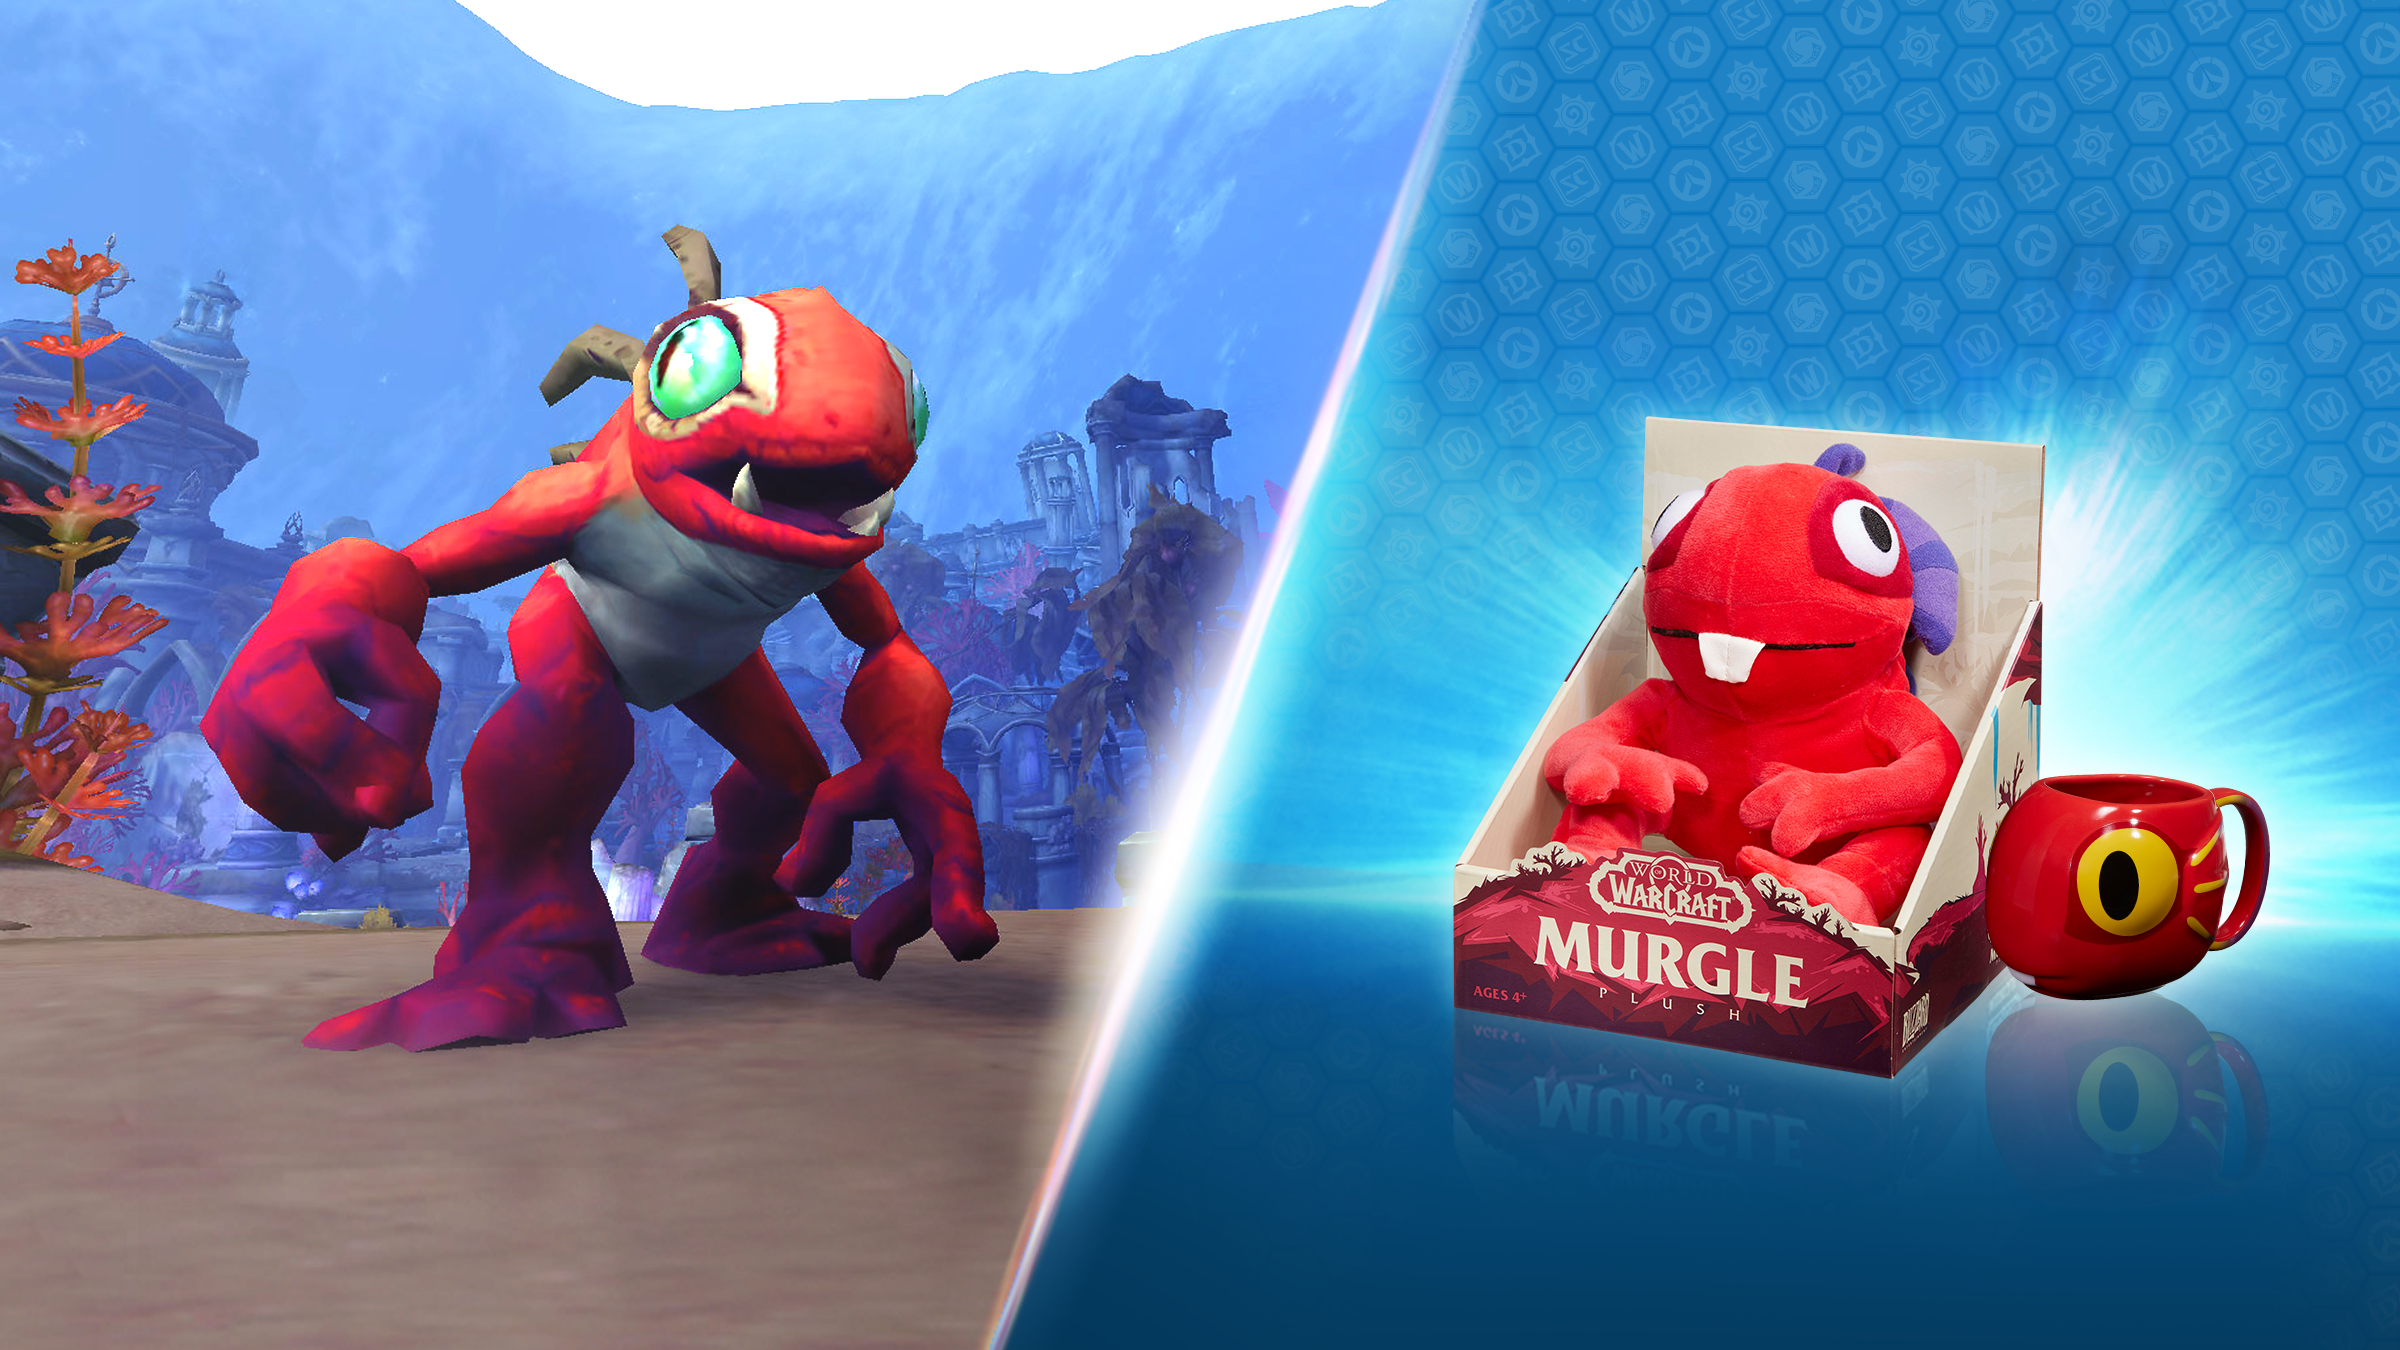 Get Murgle the Red Murloc Plush and Mug July 9!